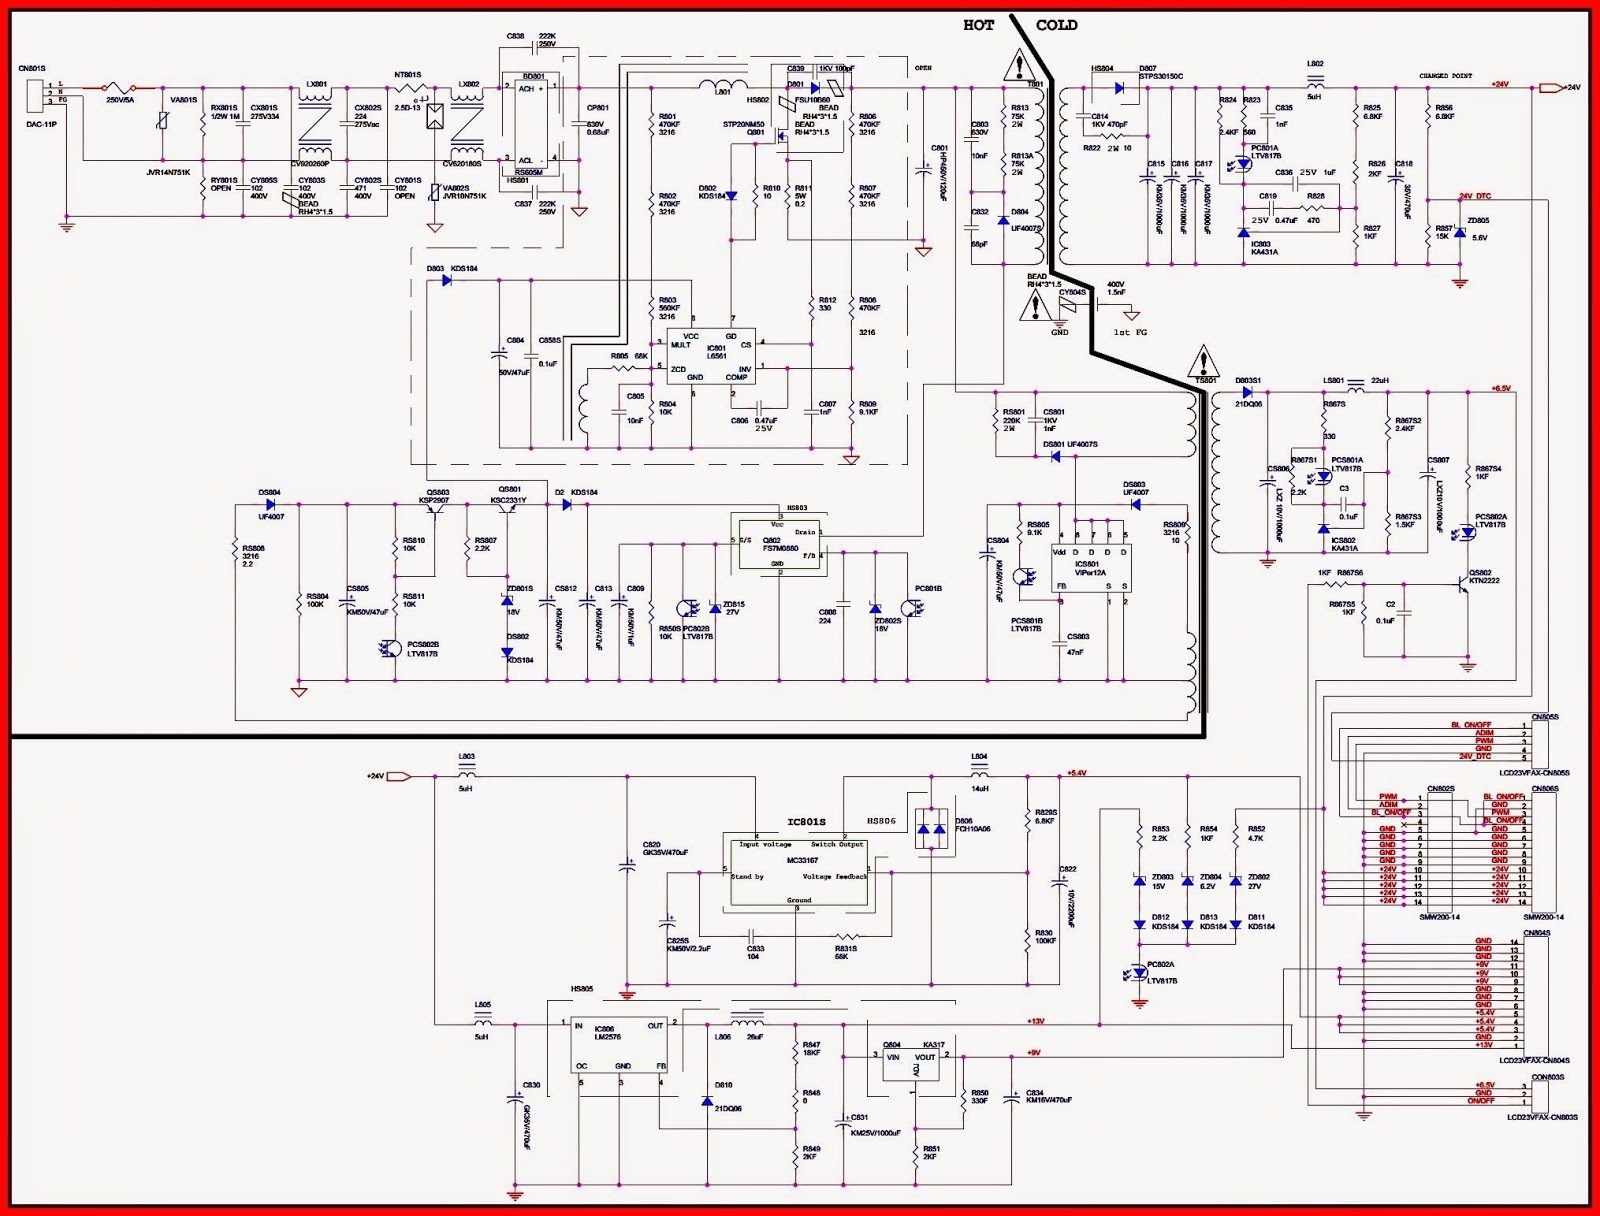 Diagram Philips Radio Auto Electrical Wiring Tv Power Supply Ac Matic Using Pc8178 2sd2498 Bn 96 Samsung Schematic Circuit